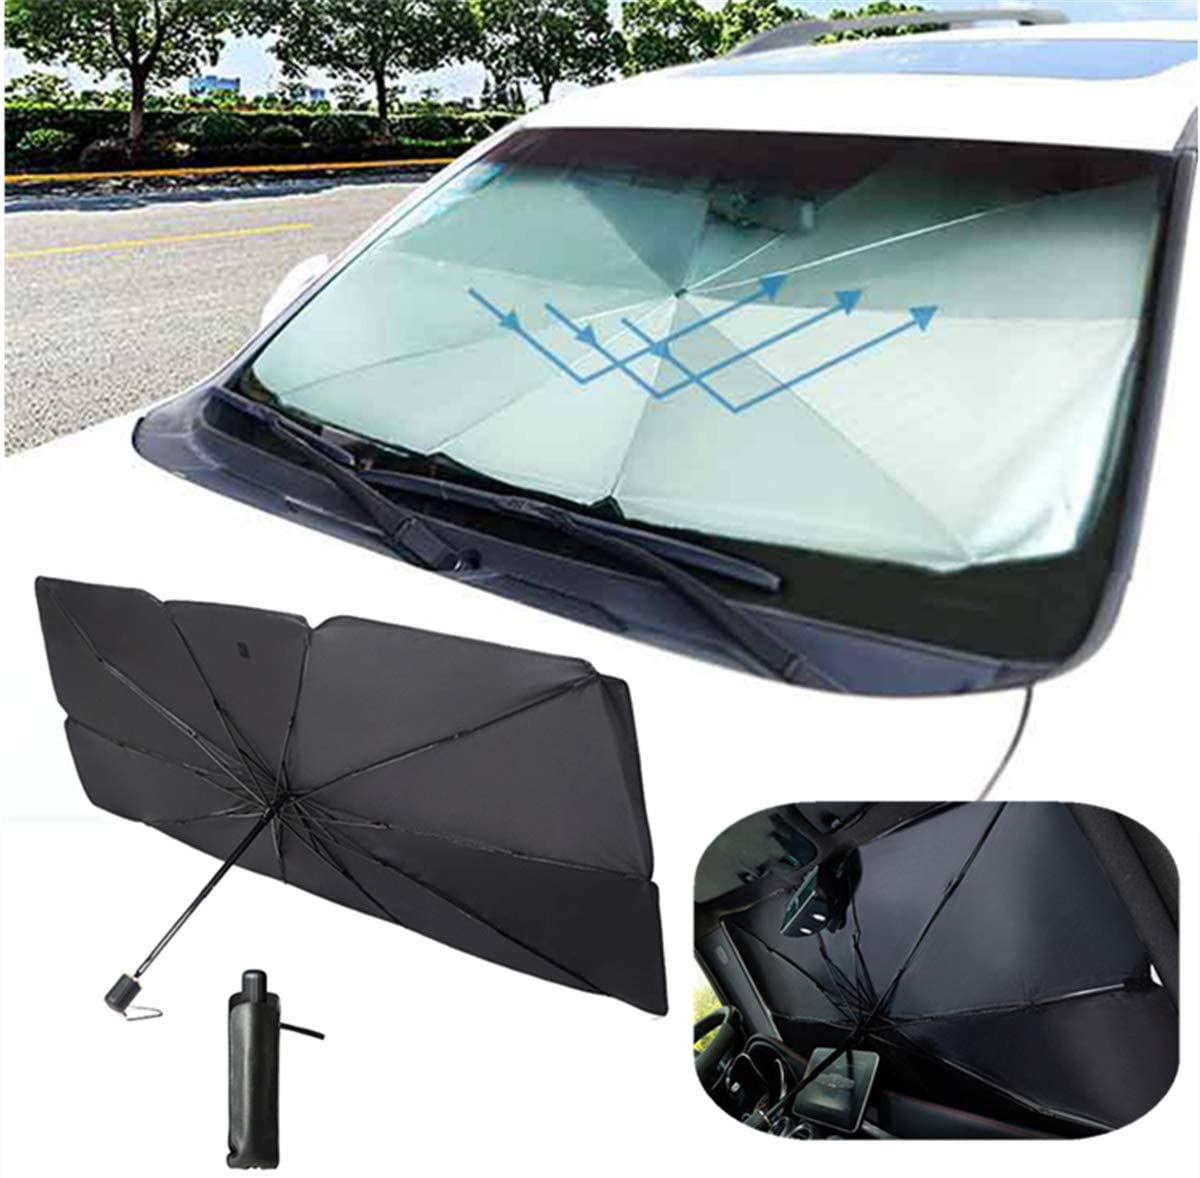 ytbmhhuoupx Car Windshield Sun Shade for Infiniti QX60 Blocks Rays Sun Umbrella Visor Protector Foldable Reflector Umbrella 25.6x49.2in